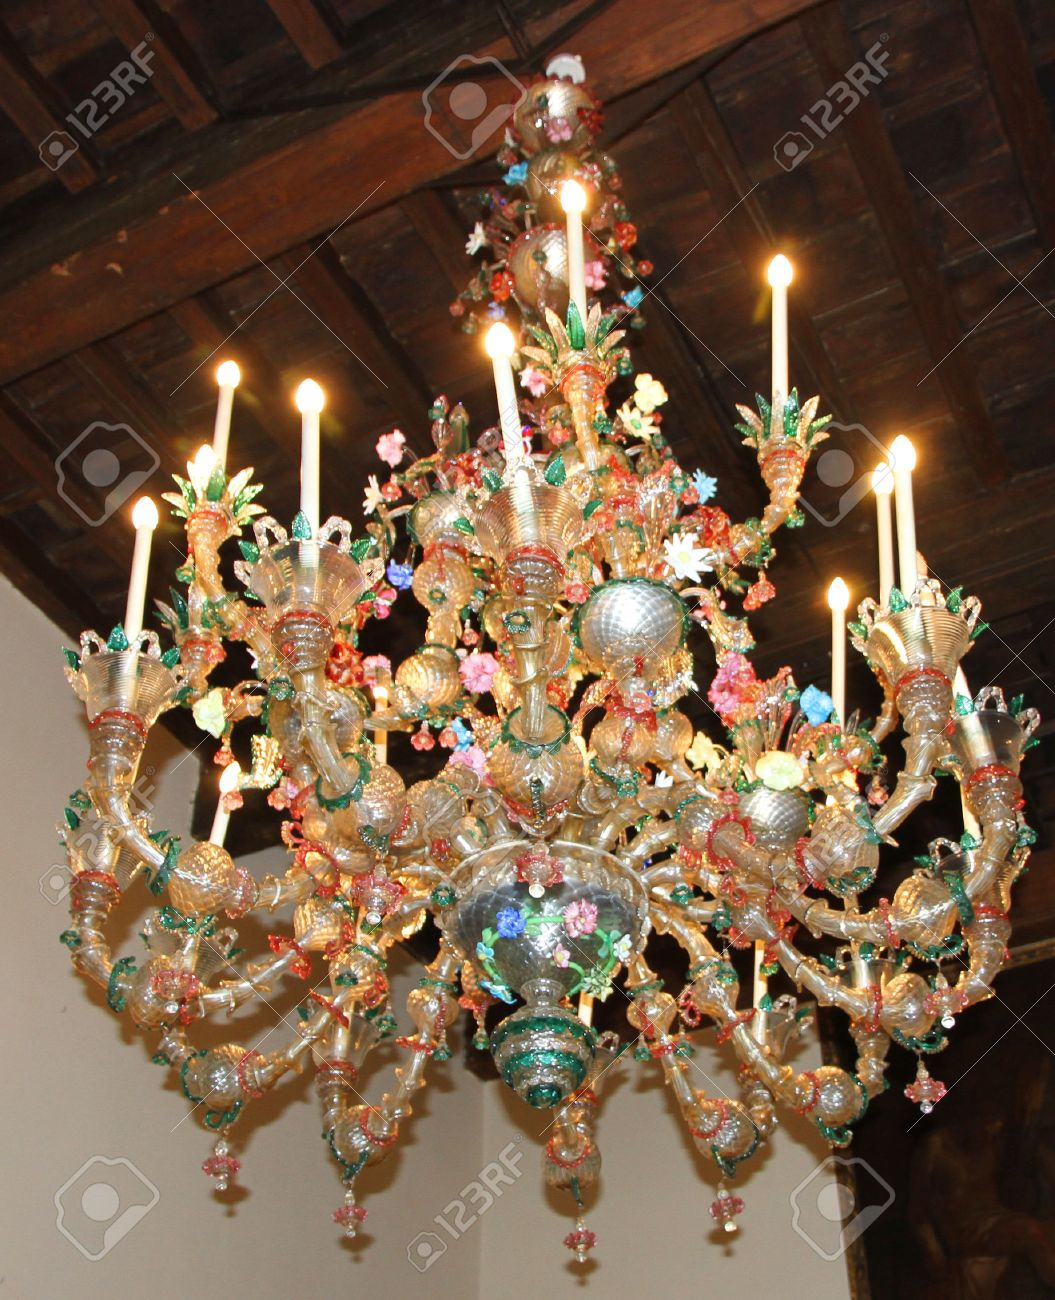 Original glass chandelier murano glass in an ancient venetian original glass chandelier murano glass in an ancient venetian villa stock photo 22970767 mozeypictures Choice Image